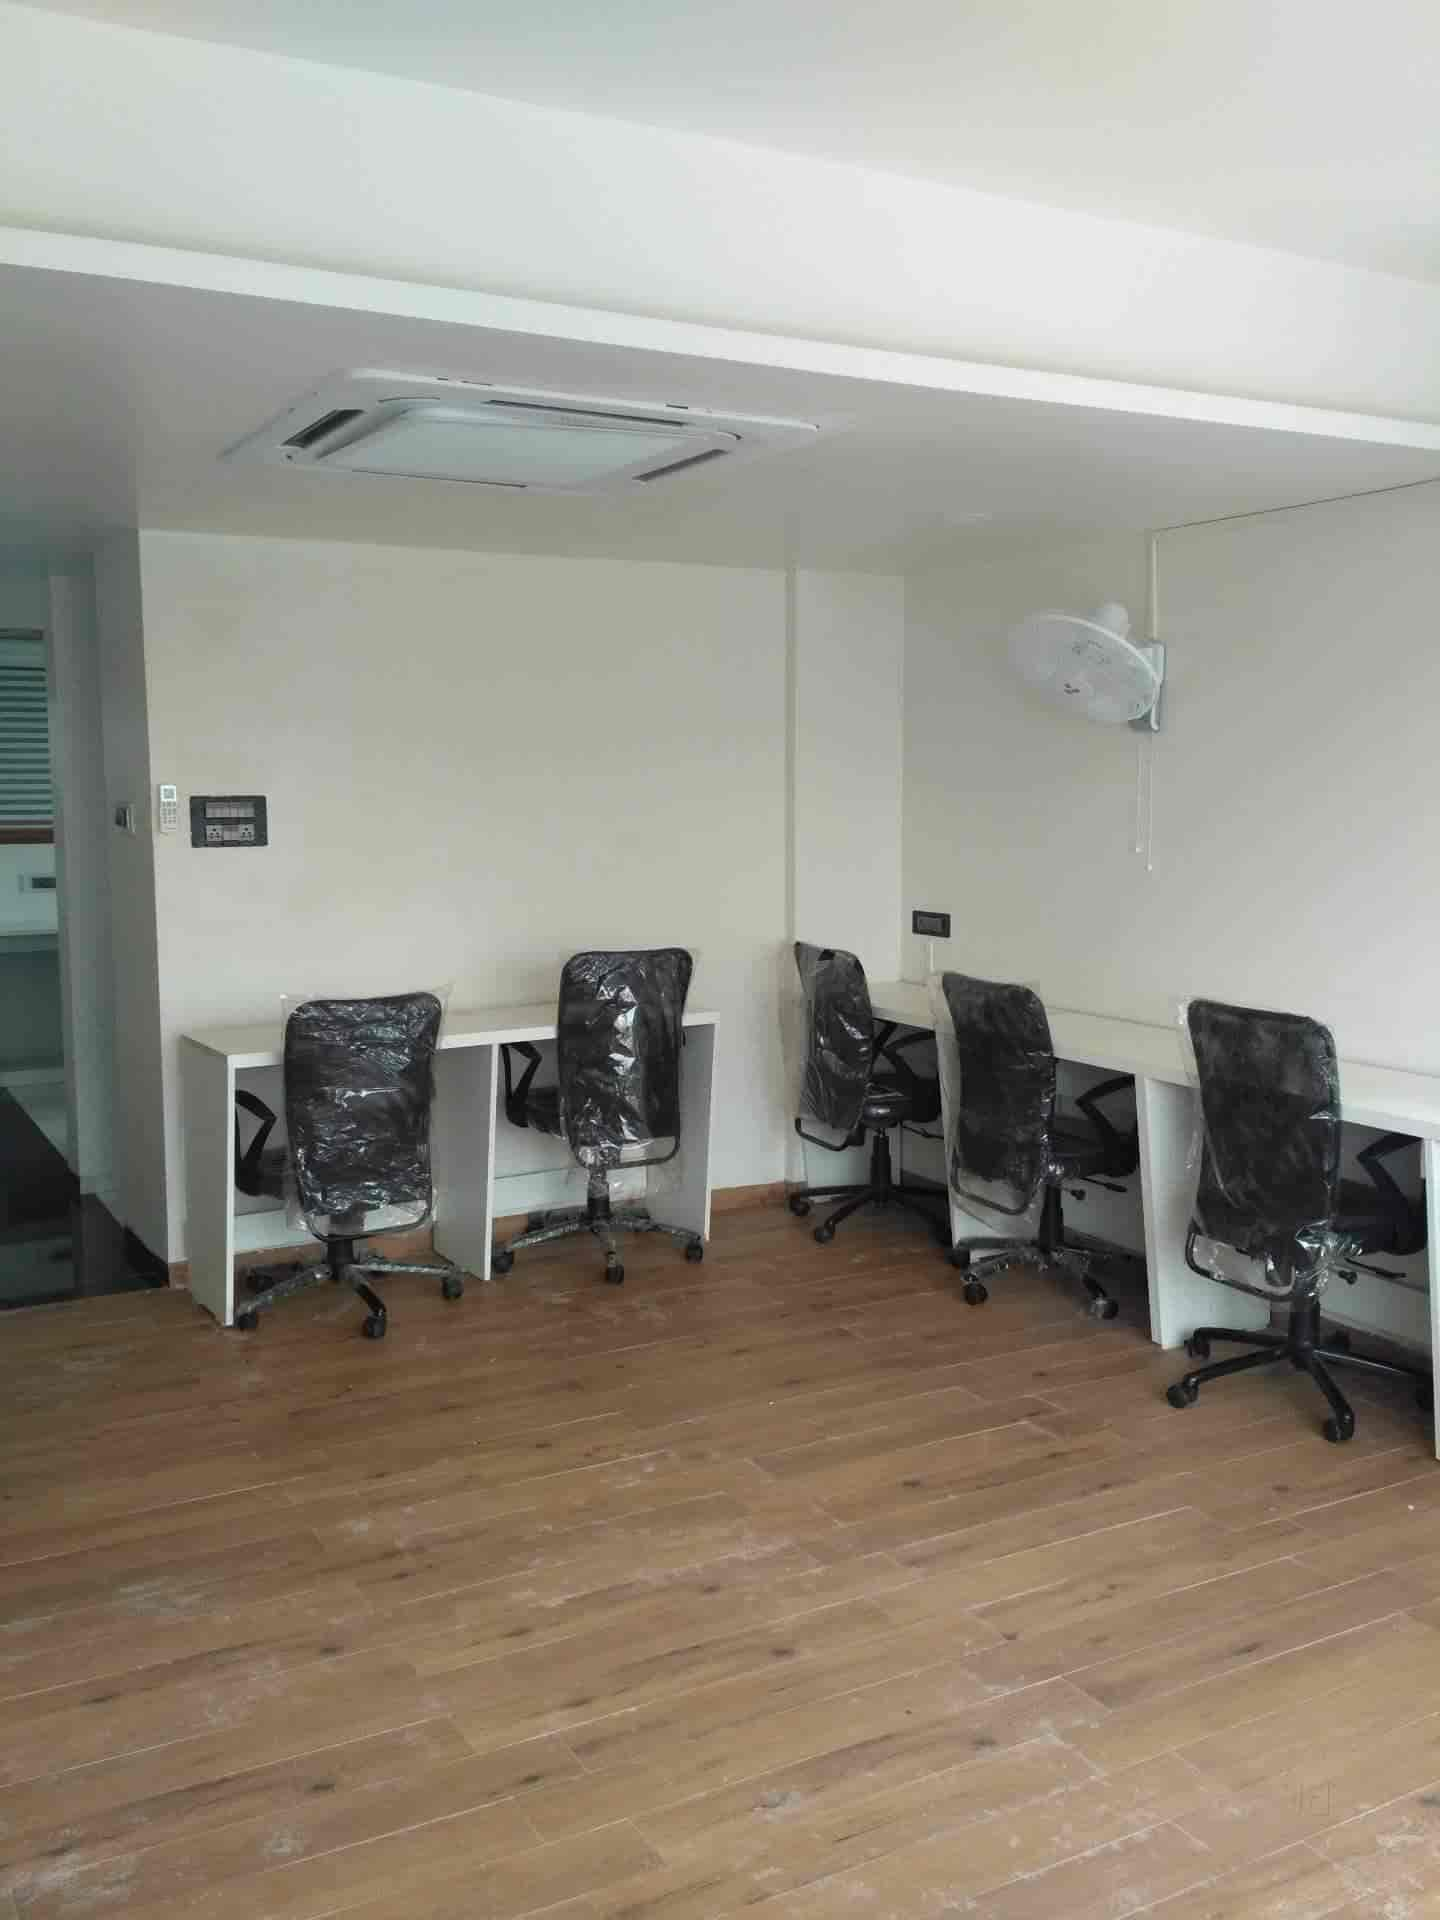 Top 100 Office Space On Rent In Pune À¤'फ À¤¸ À¤¸ À¤¹ À¤° À¤ª À¤£ Best Office Space On Lease Justdial